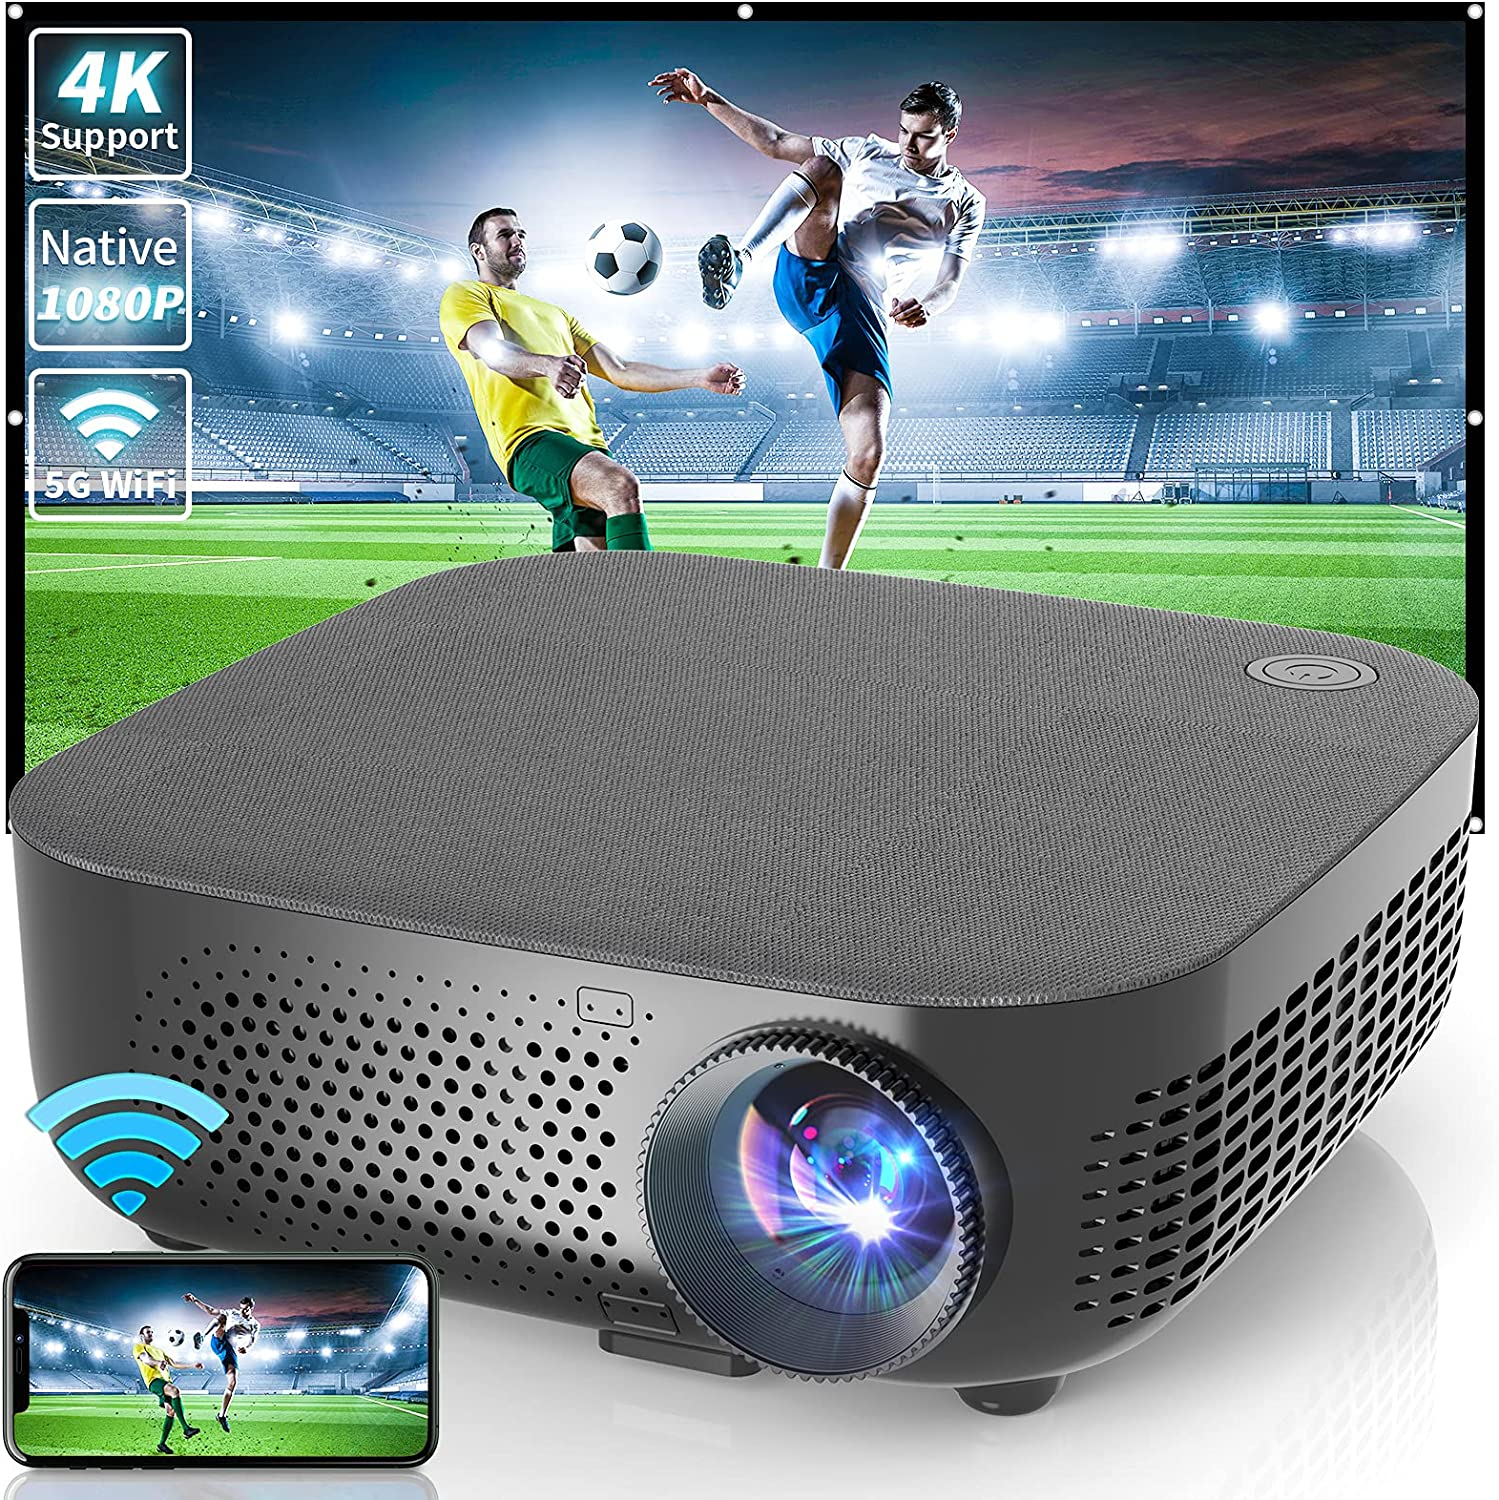 WISELAZER 1080p Ultra HD 7500L Home Movie Projectors, Support 4K, 5G